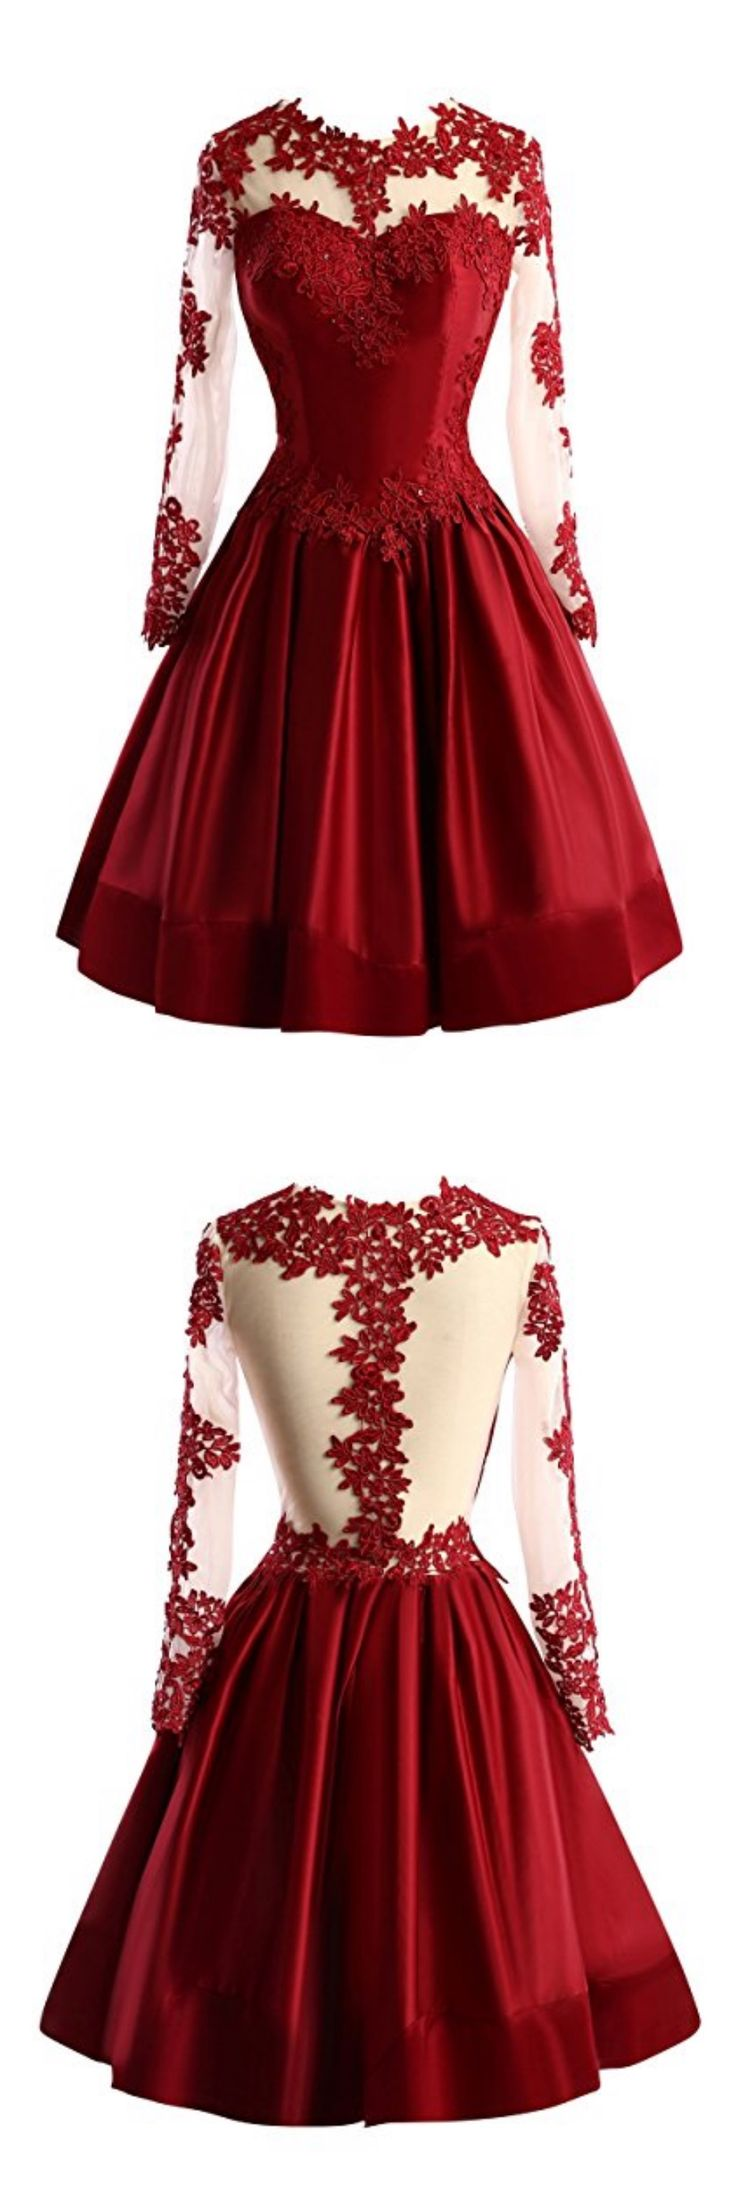 burgundy homecoming dresses, 2k17 homecoming dresses, lace homecoming dresses,long sleeves homecoming dresses, homecoming dresses knee length, satin homecoming dresses,cheap homecoming dresses, cocktail dresses, graduation dresses, party dresses,short prom dresses #SIMIBridal #homecomingdresses